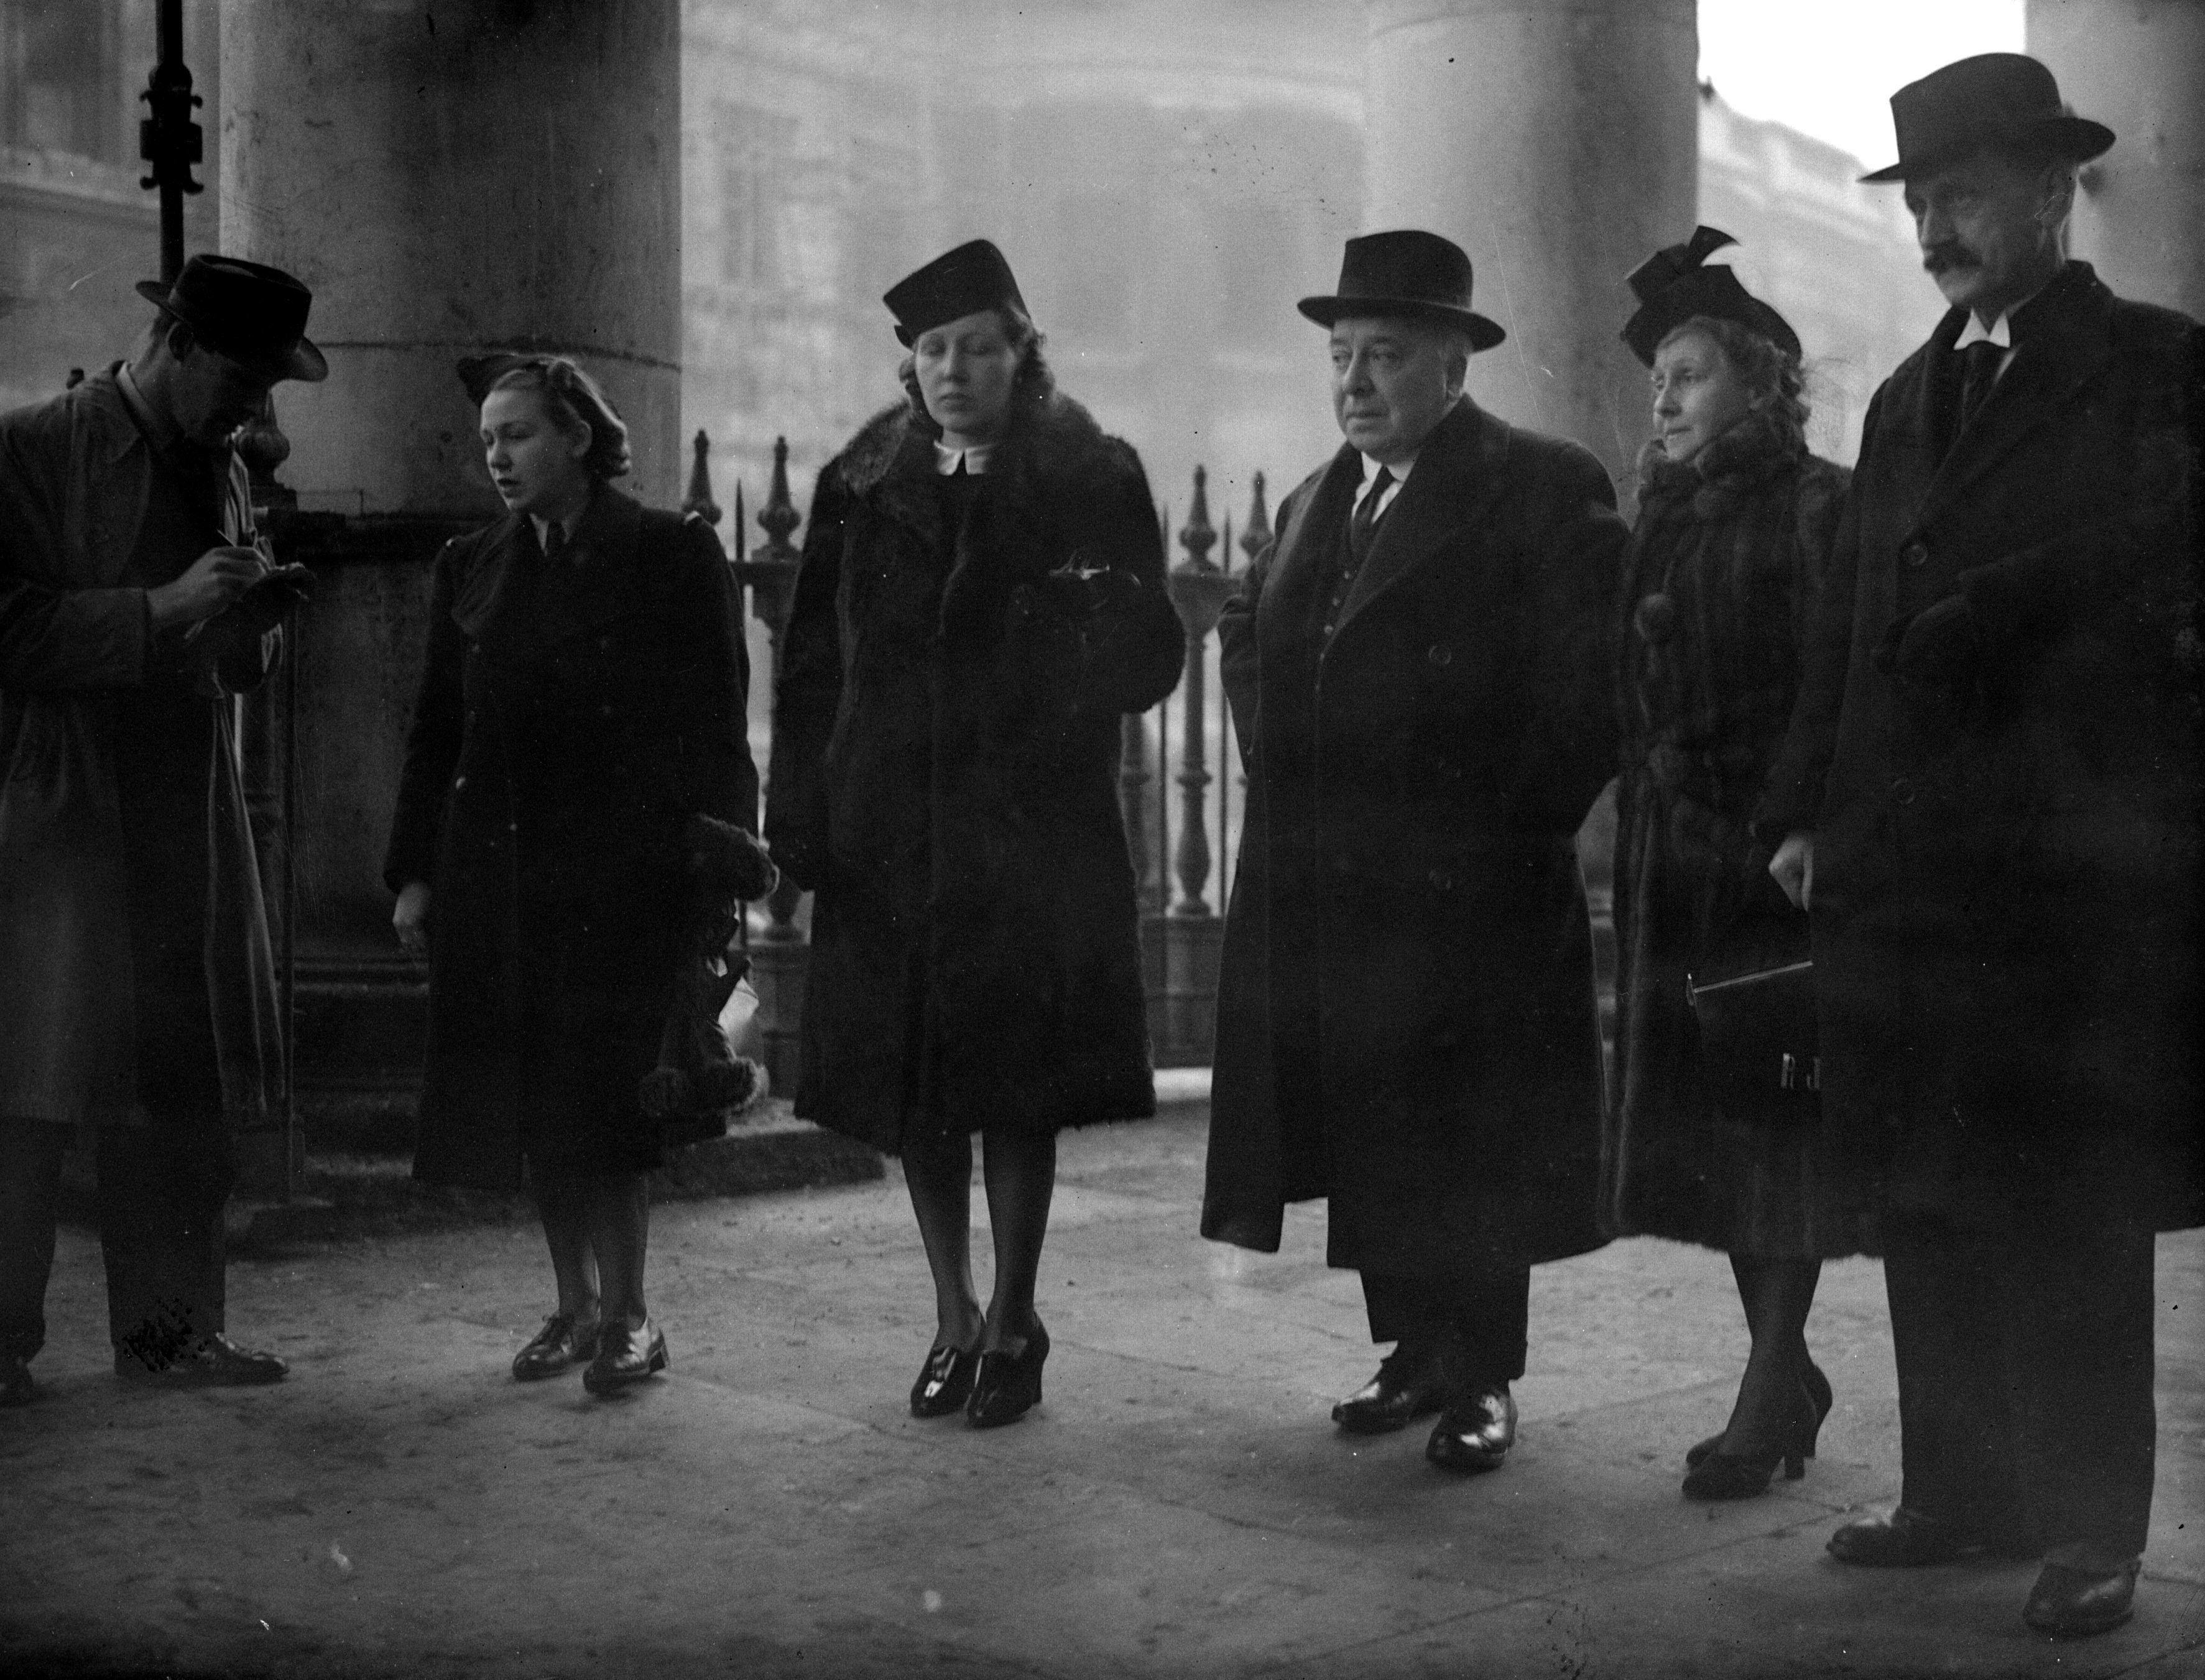 14th January 1941: Relatives arriving at the church of St Martin-in-the-fields to attend the memorial service for aviation pioneer Amy Johnson (1903 - 1941). Johnson was killed after in January 1941 after bailing out of her aircraft over the Thames Estuary while flying for the Air Transport Auxiliary. Among the relatives are Amy Johnson's father (centre) and Betty Johnson (left) in ATA uniform. (Photo by Denn/Keystone/Getty Images)